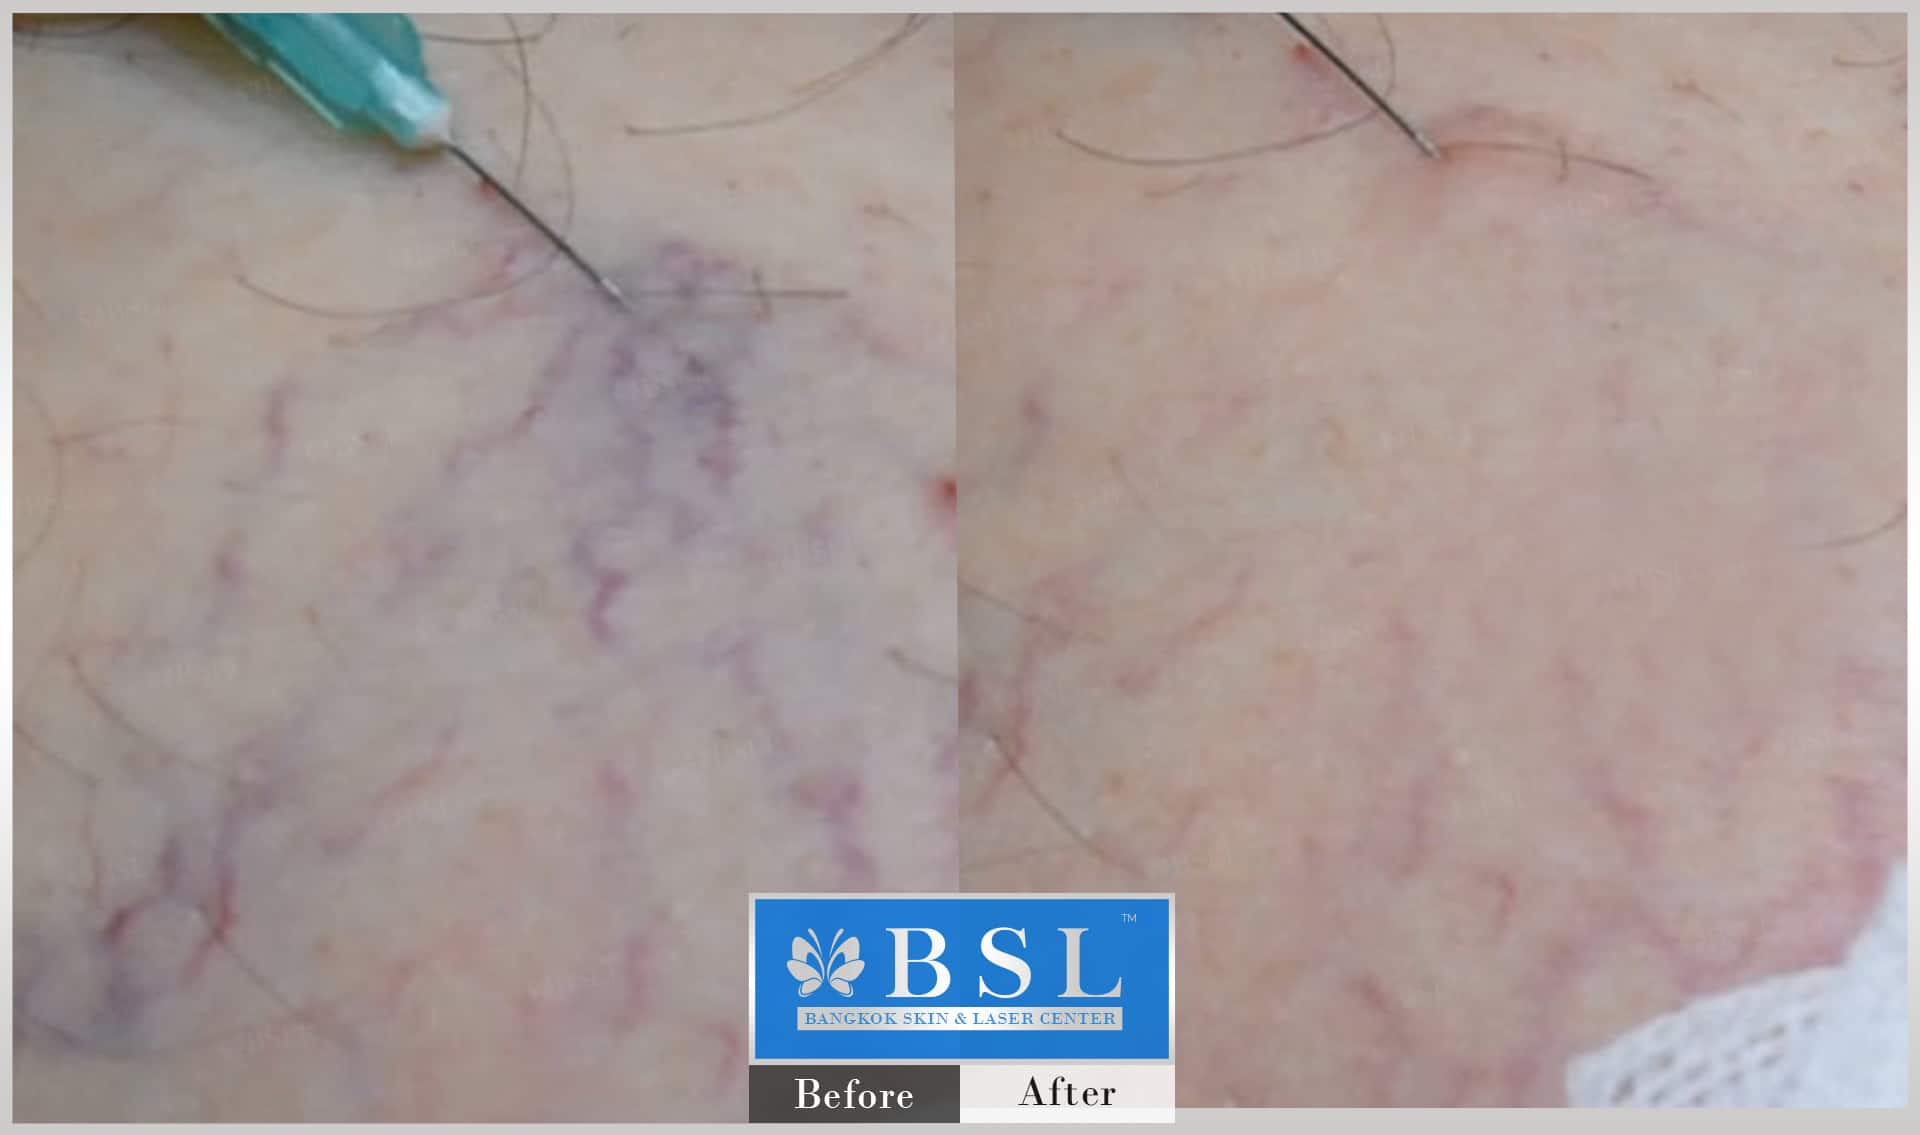 before-after-results-redness-acne-006